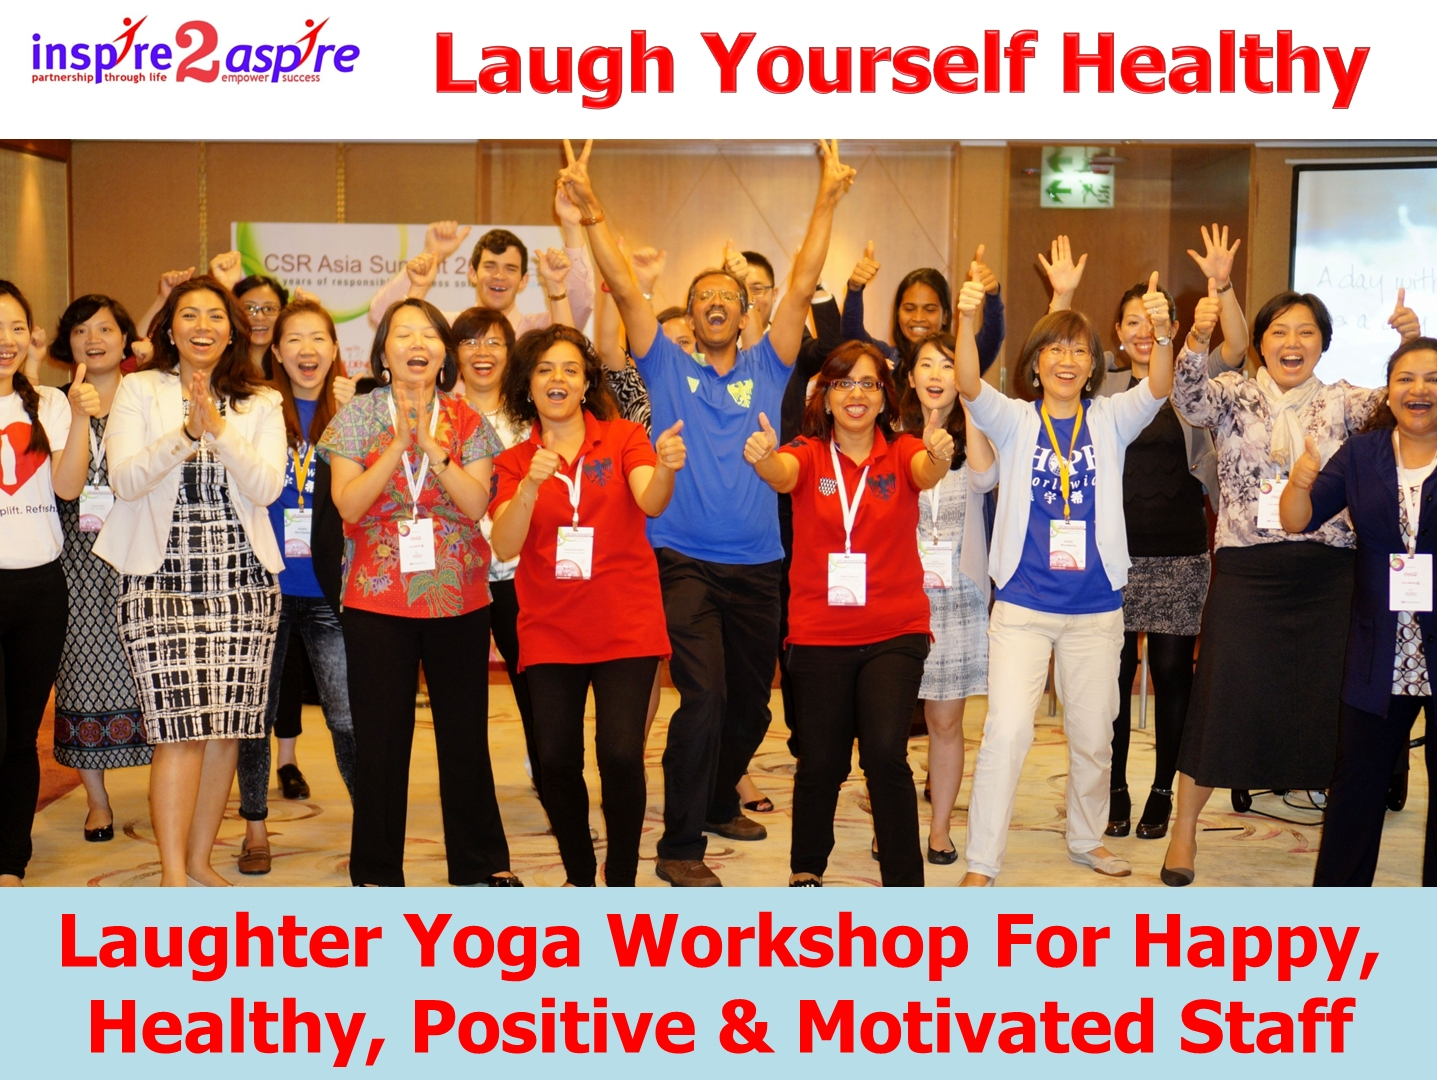 laughter-yoga-workshop-happy-healthy-positive-motivated-staff